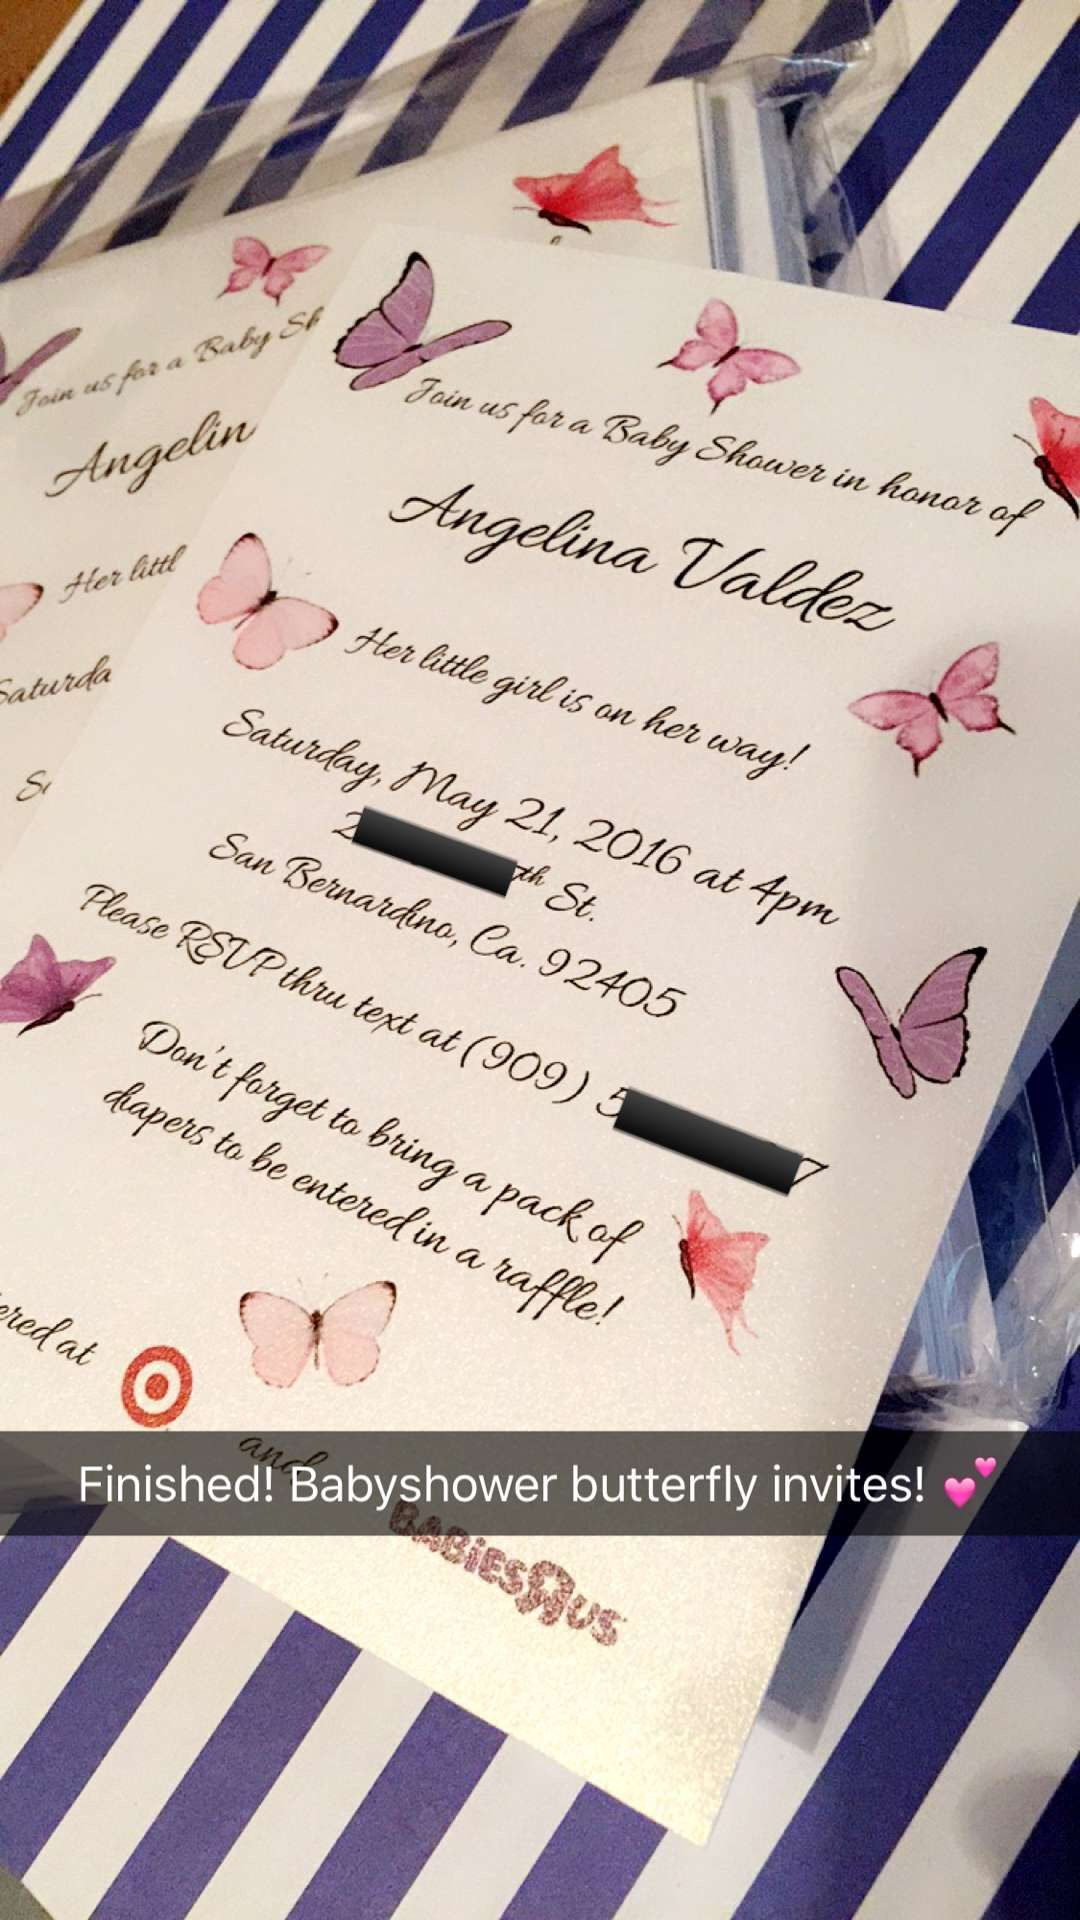 boy baby shower invitations australia%0A Baby shower butterfly invitation